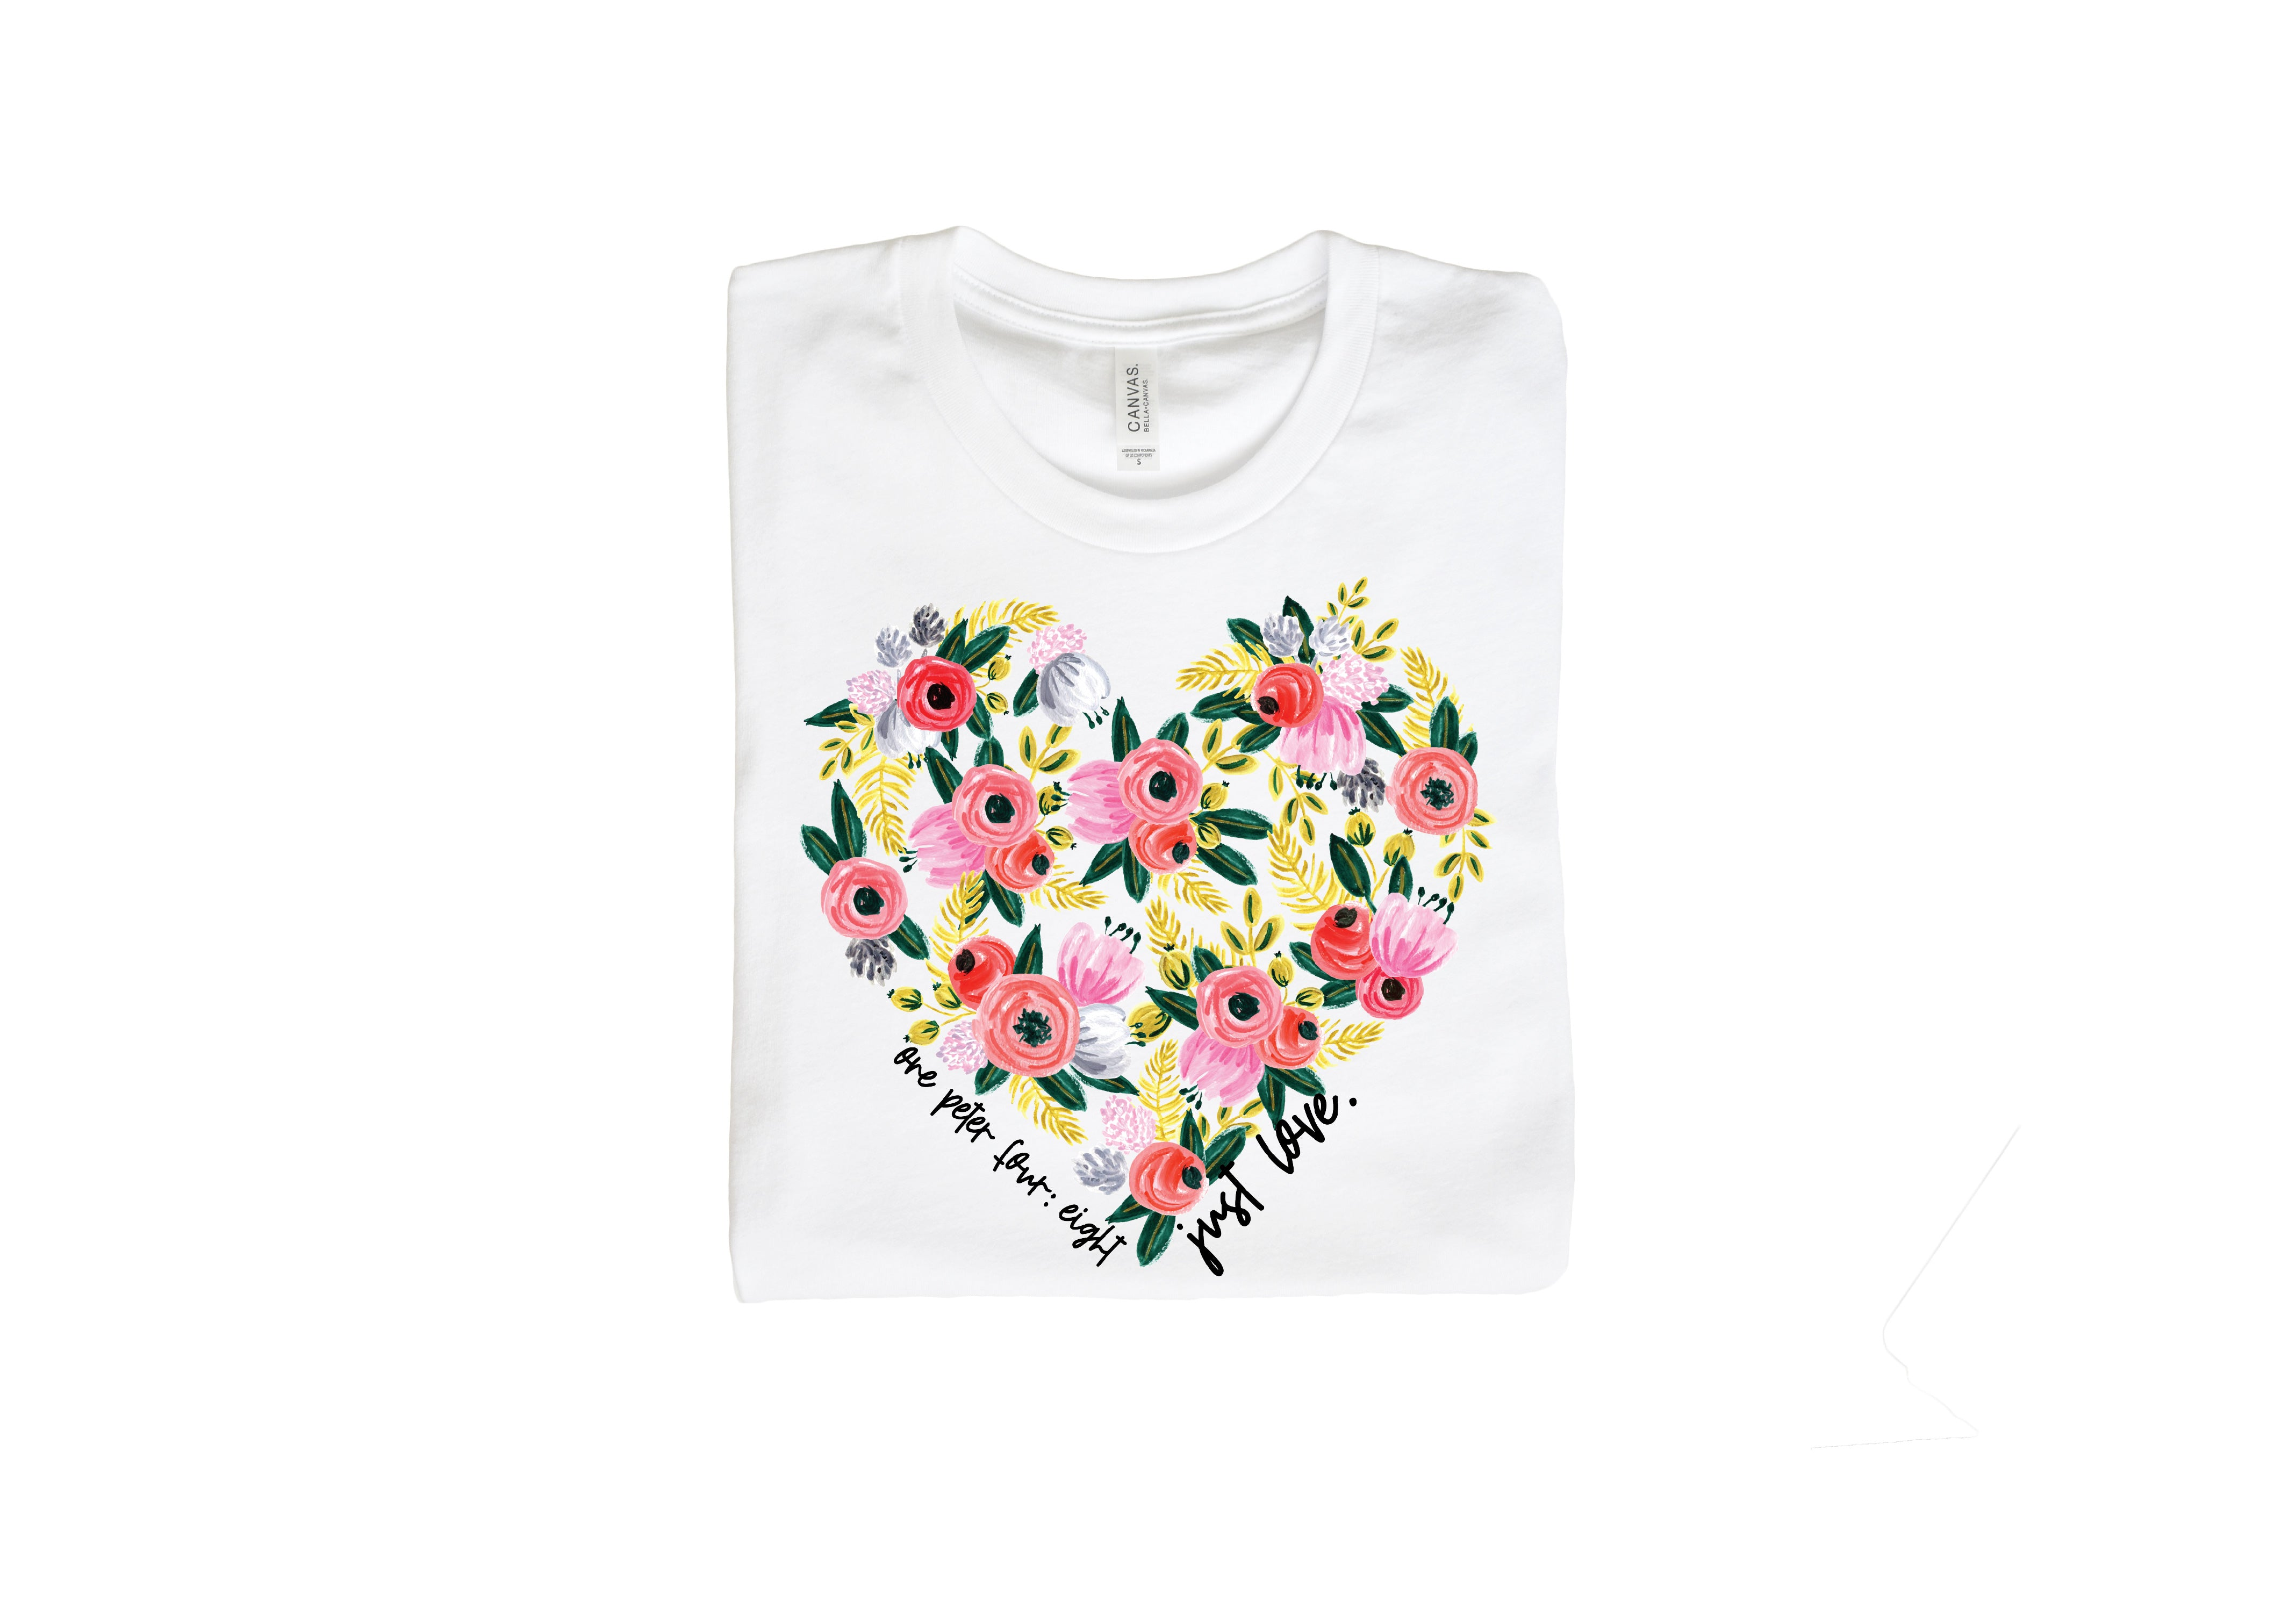 Just Love Floral Heart Tee